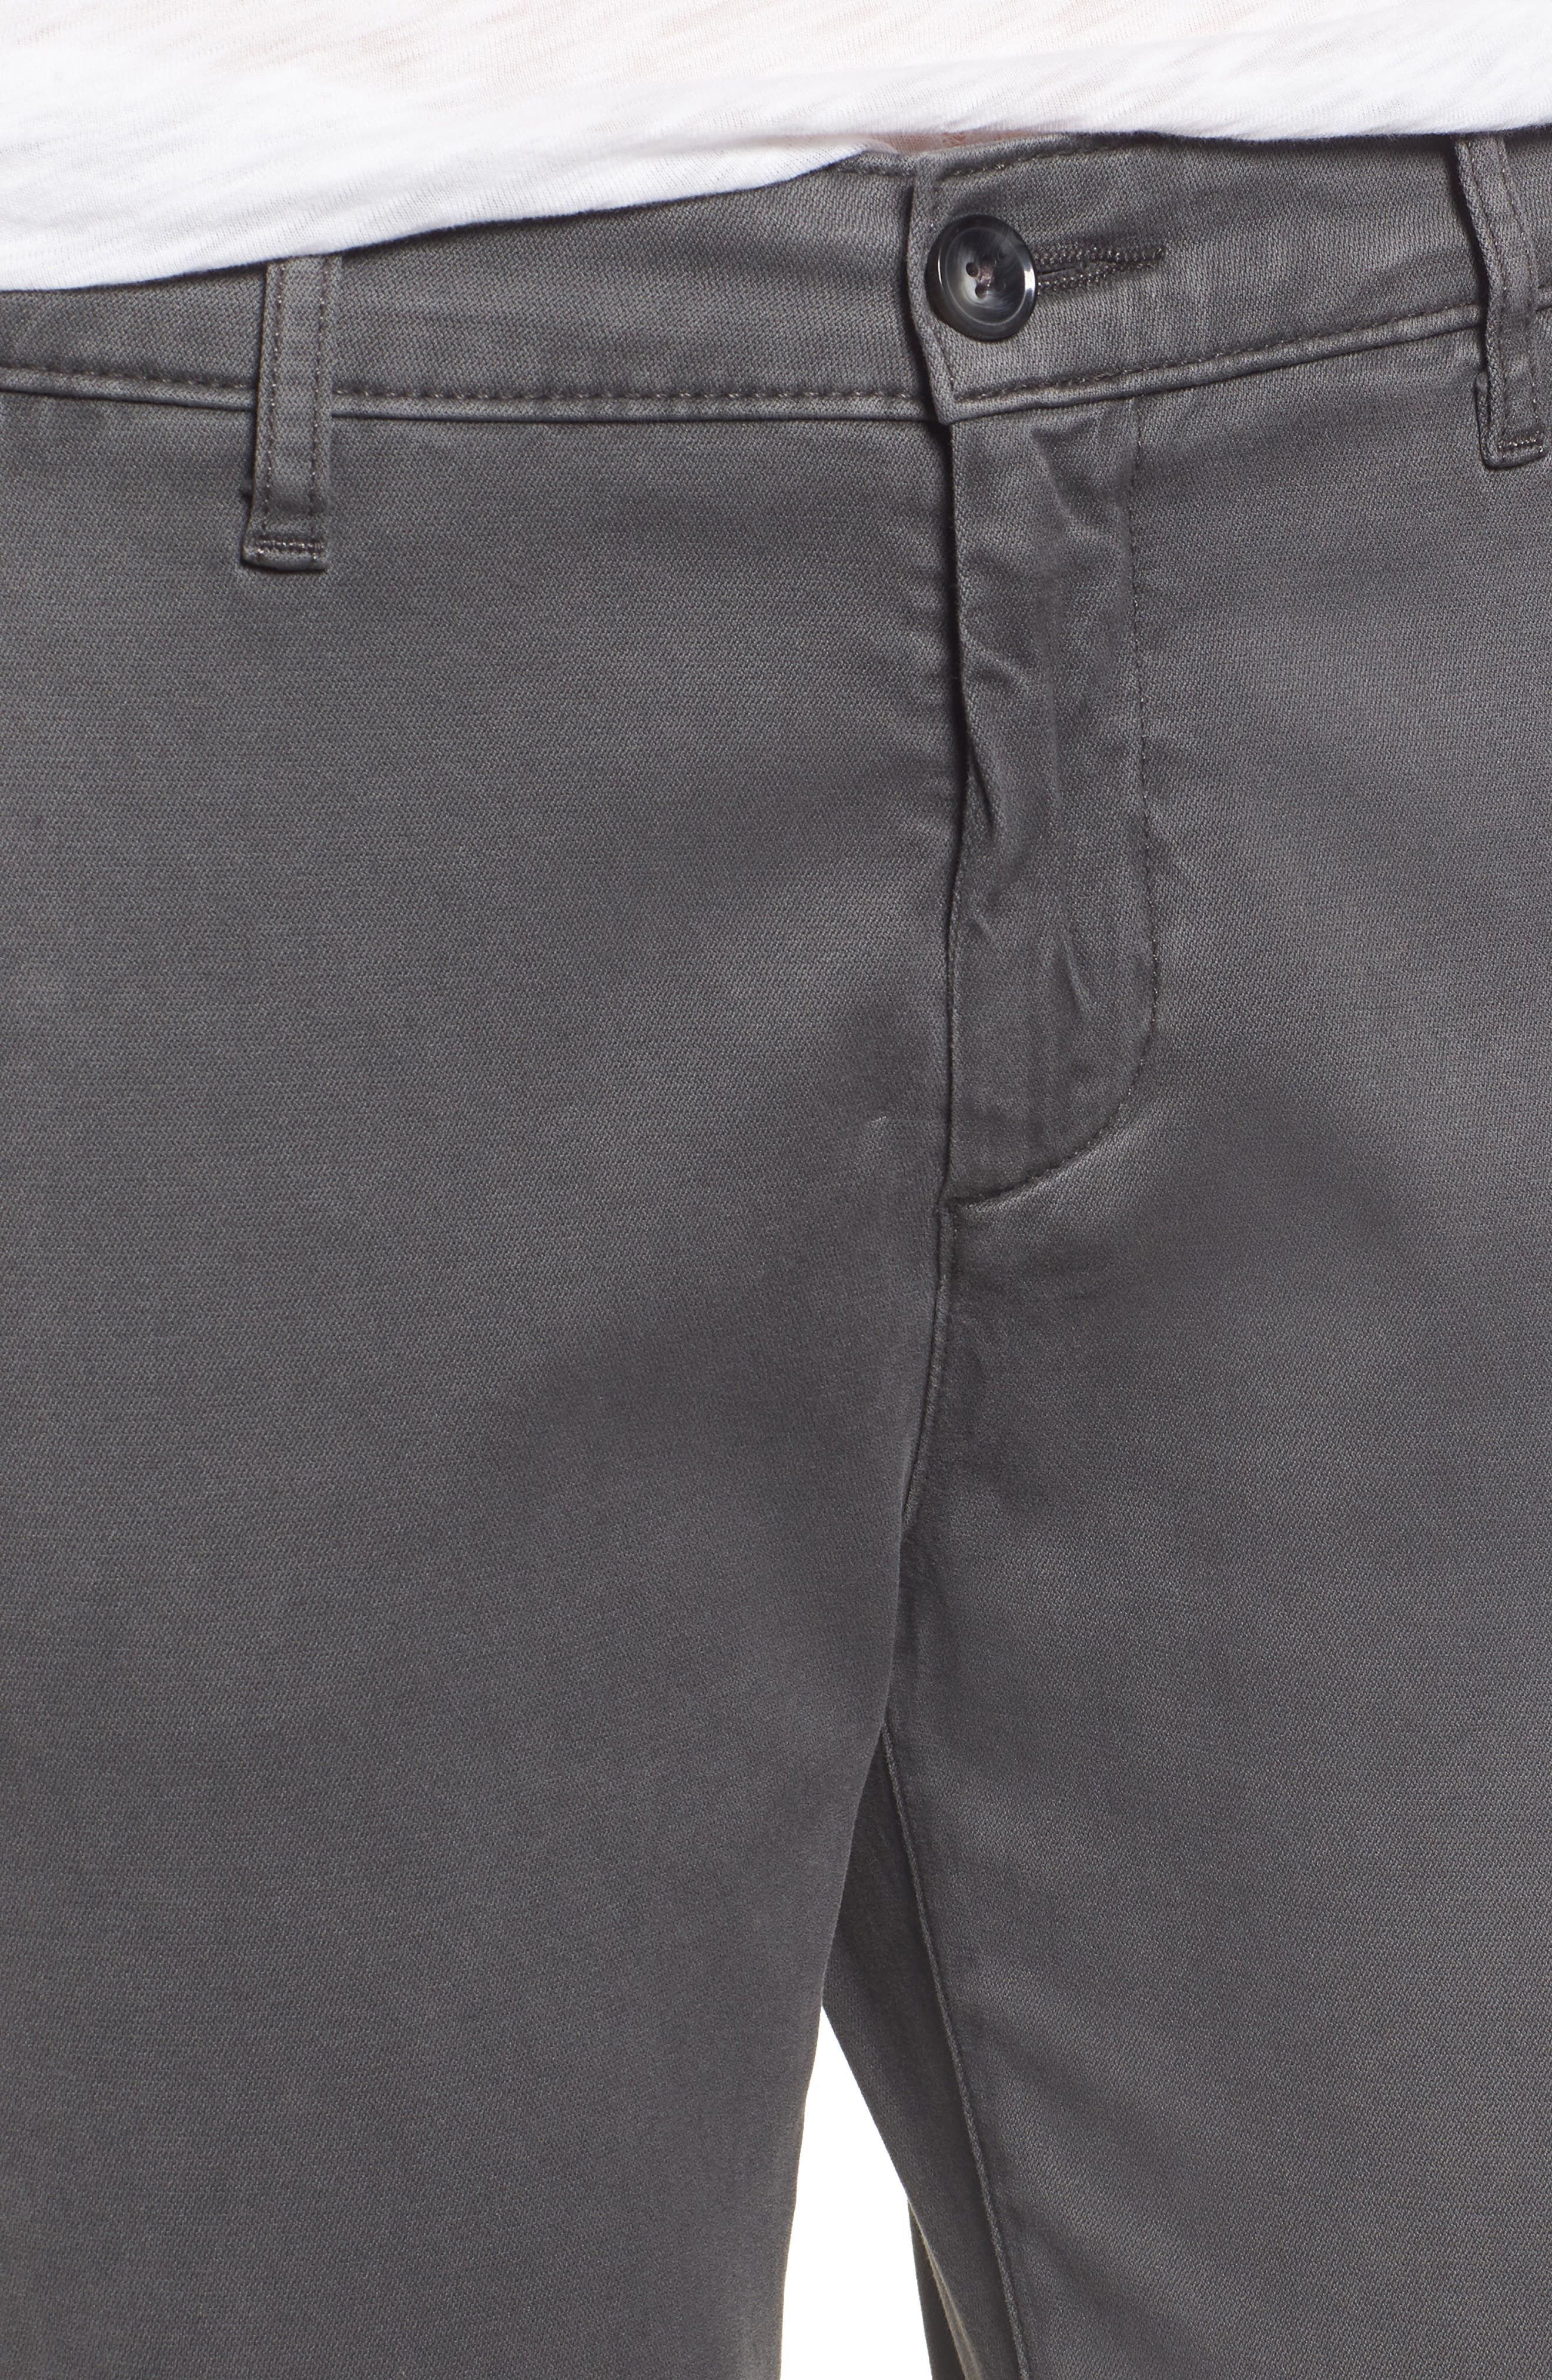 Caden Crop Twill Trousers,                             Alternate thumbnail 4, color,                             039